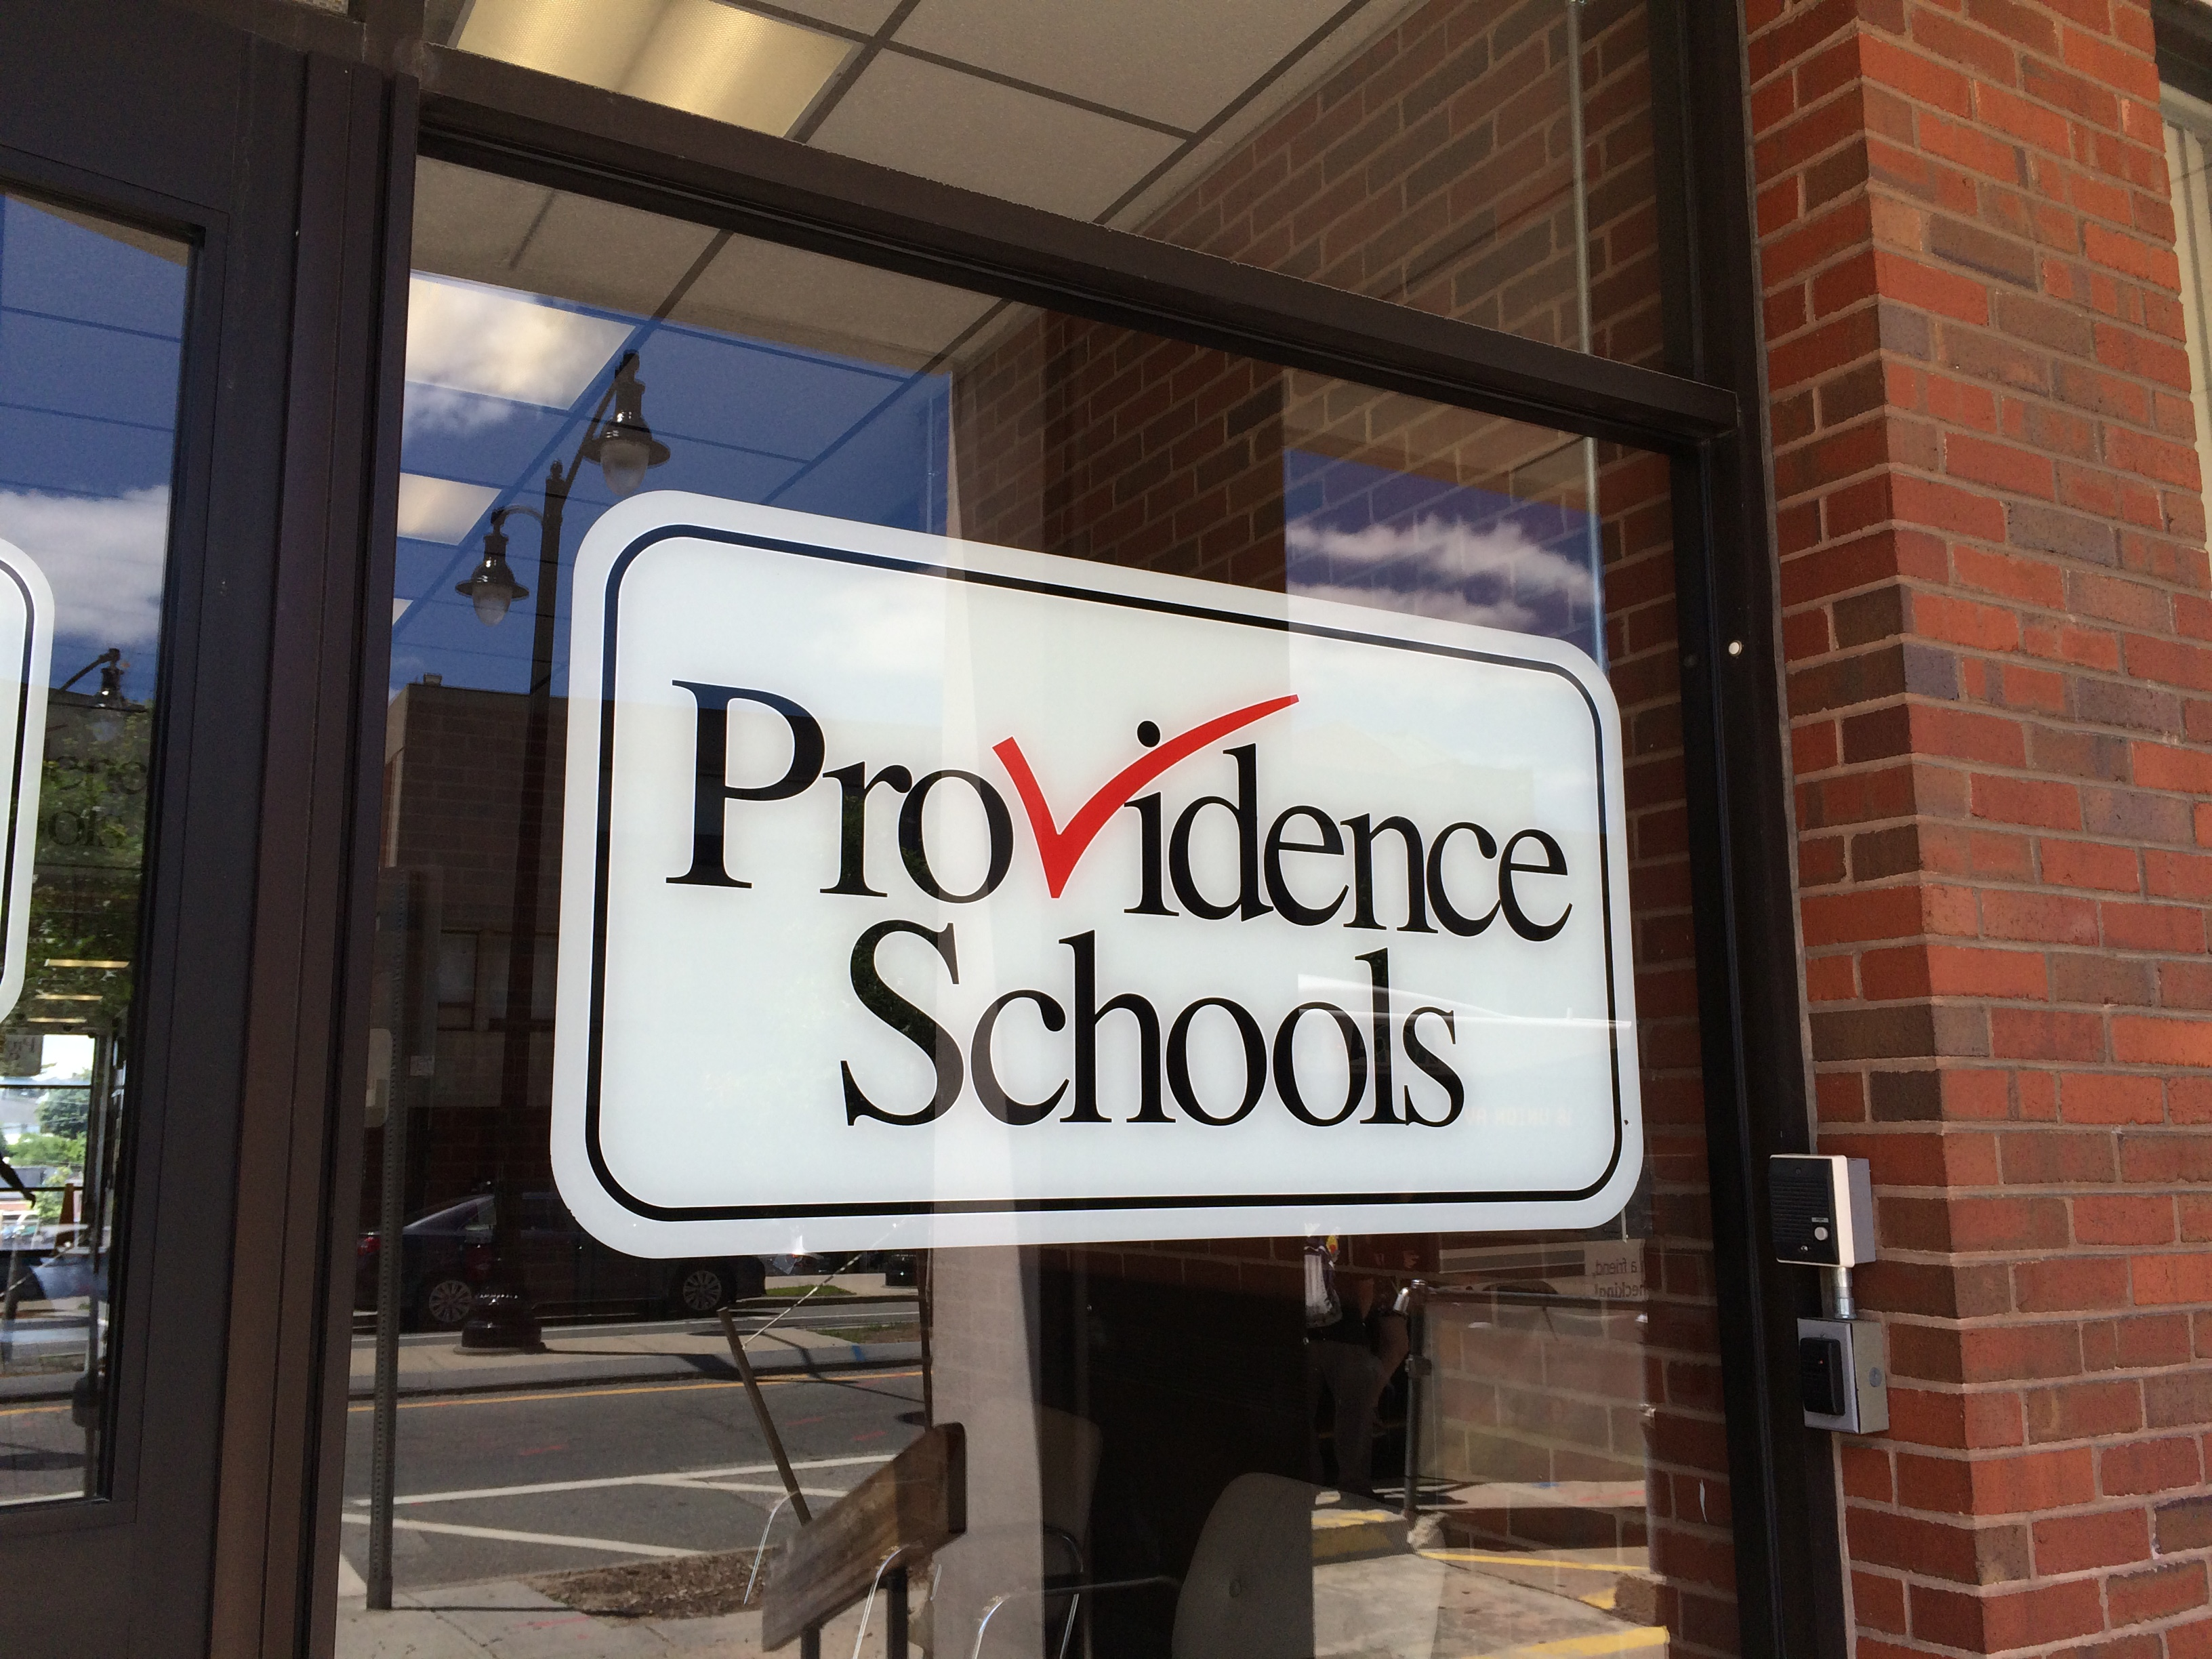 In spite of COVID pandemic, state pressing on with Providence schools improvement efforts